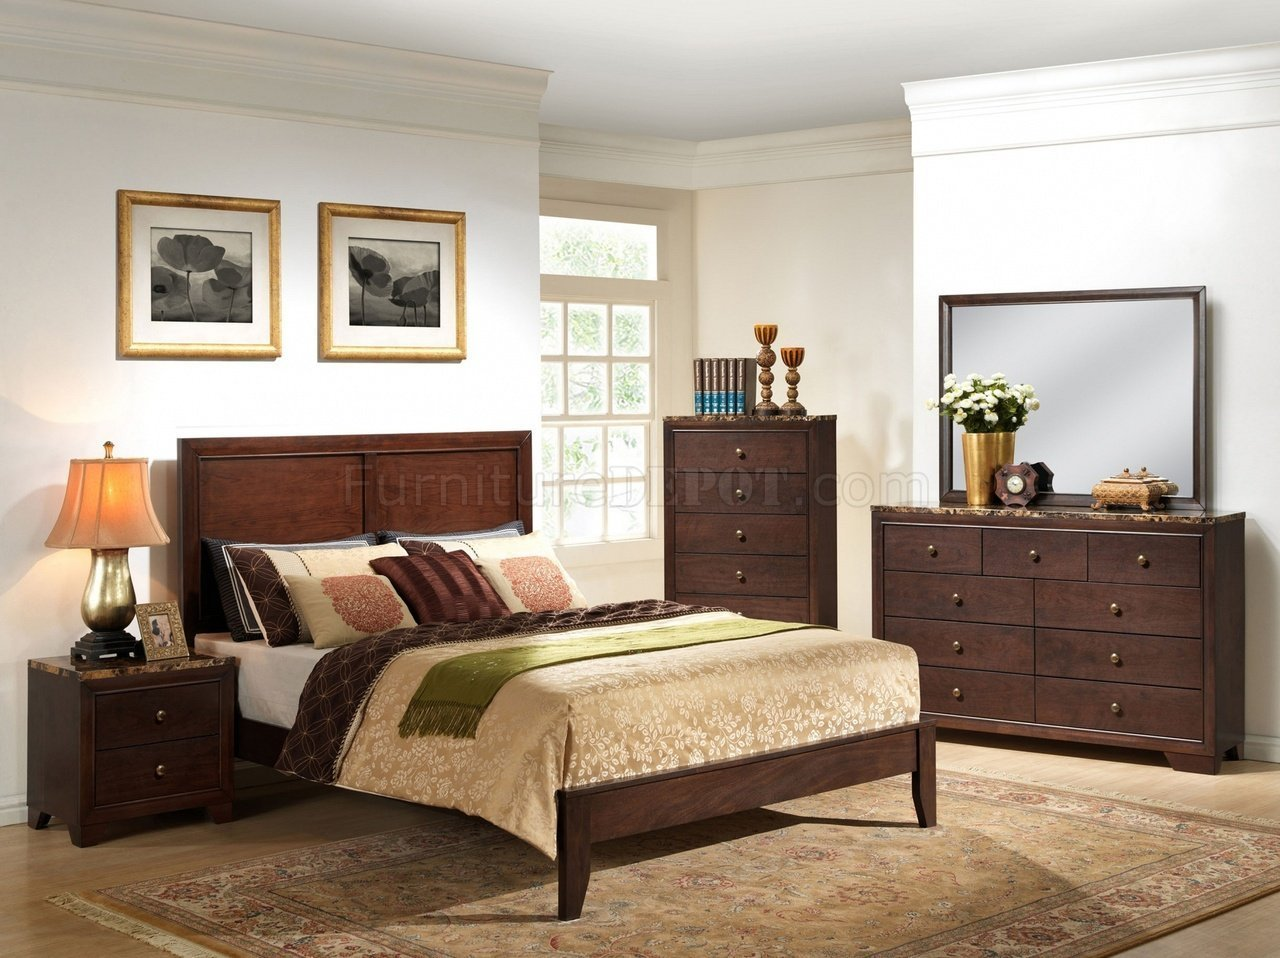 Best B205 Bedroom Set In Cherry Finish W Faux Marble Top Casegoods With Pictures